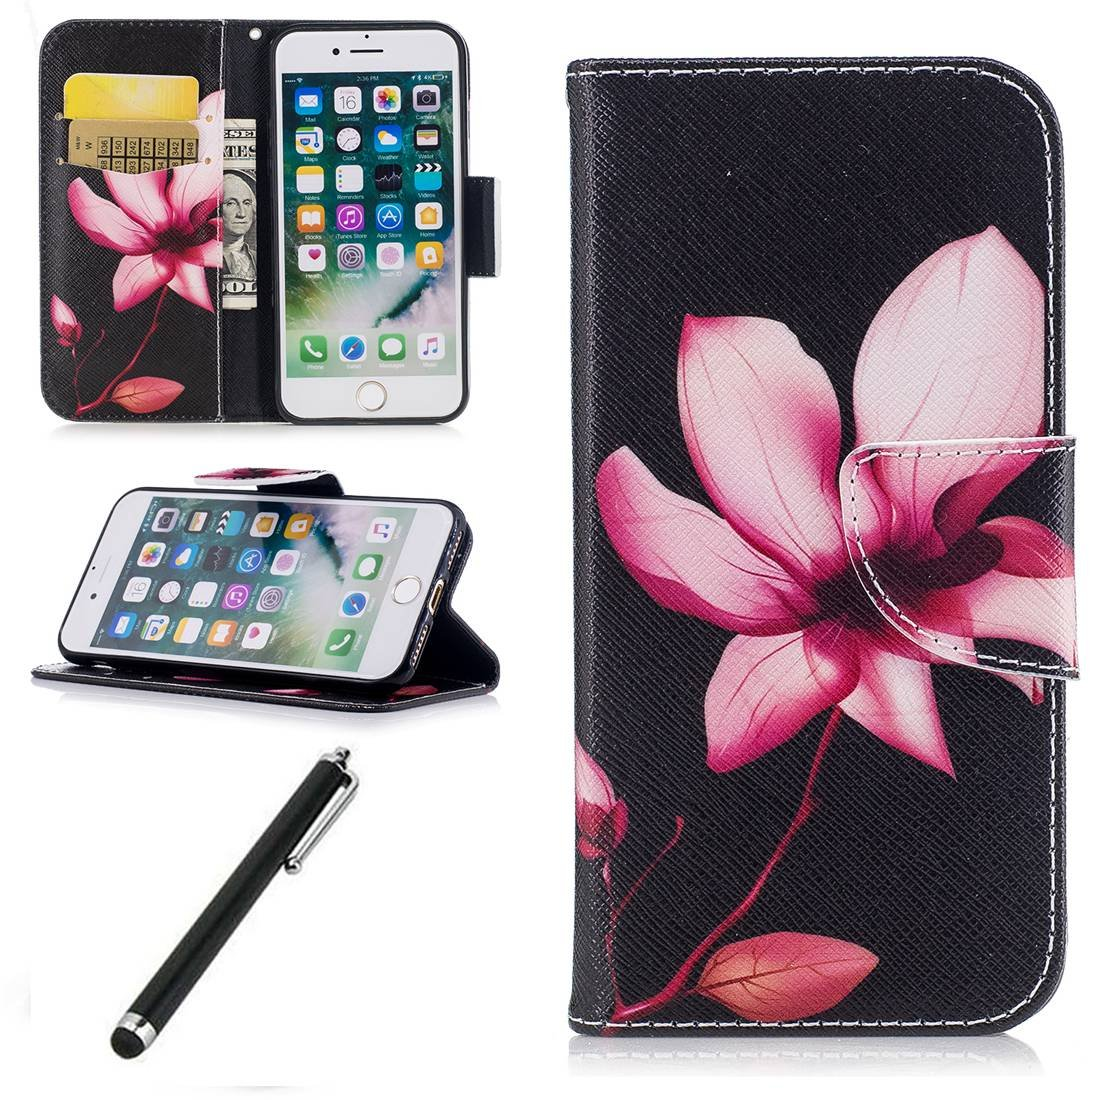 Beddouuk iPhone SE Flip Case, Wallet Case with Stand for iPhone 5/5S,[Lotus] Pattern PU Leather Protection Backcover Case Cover With Card Holder SlotFor iPhone SE/5/5S